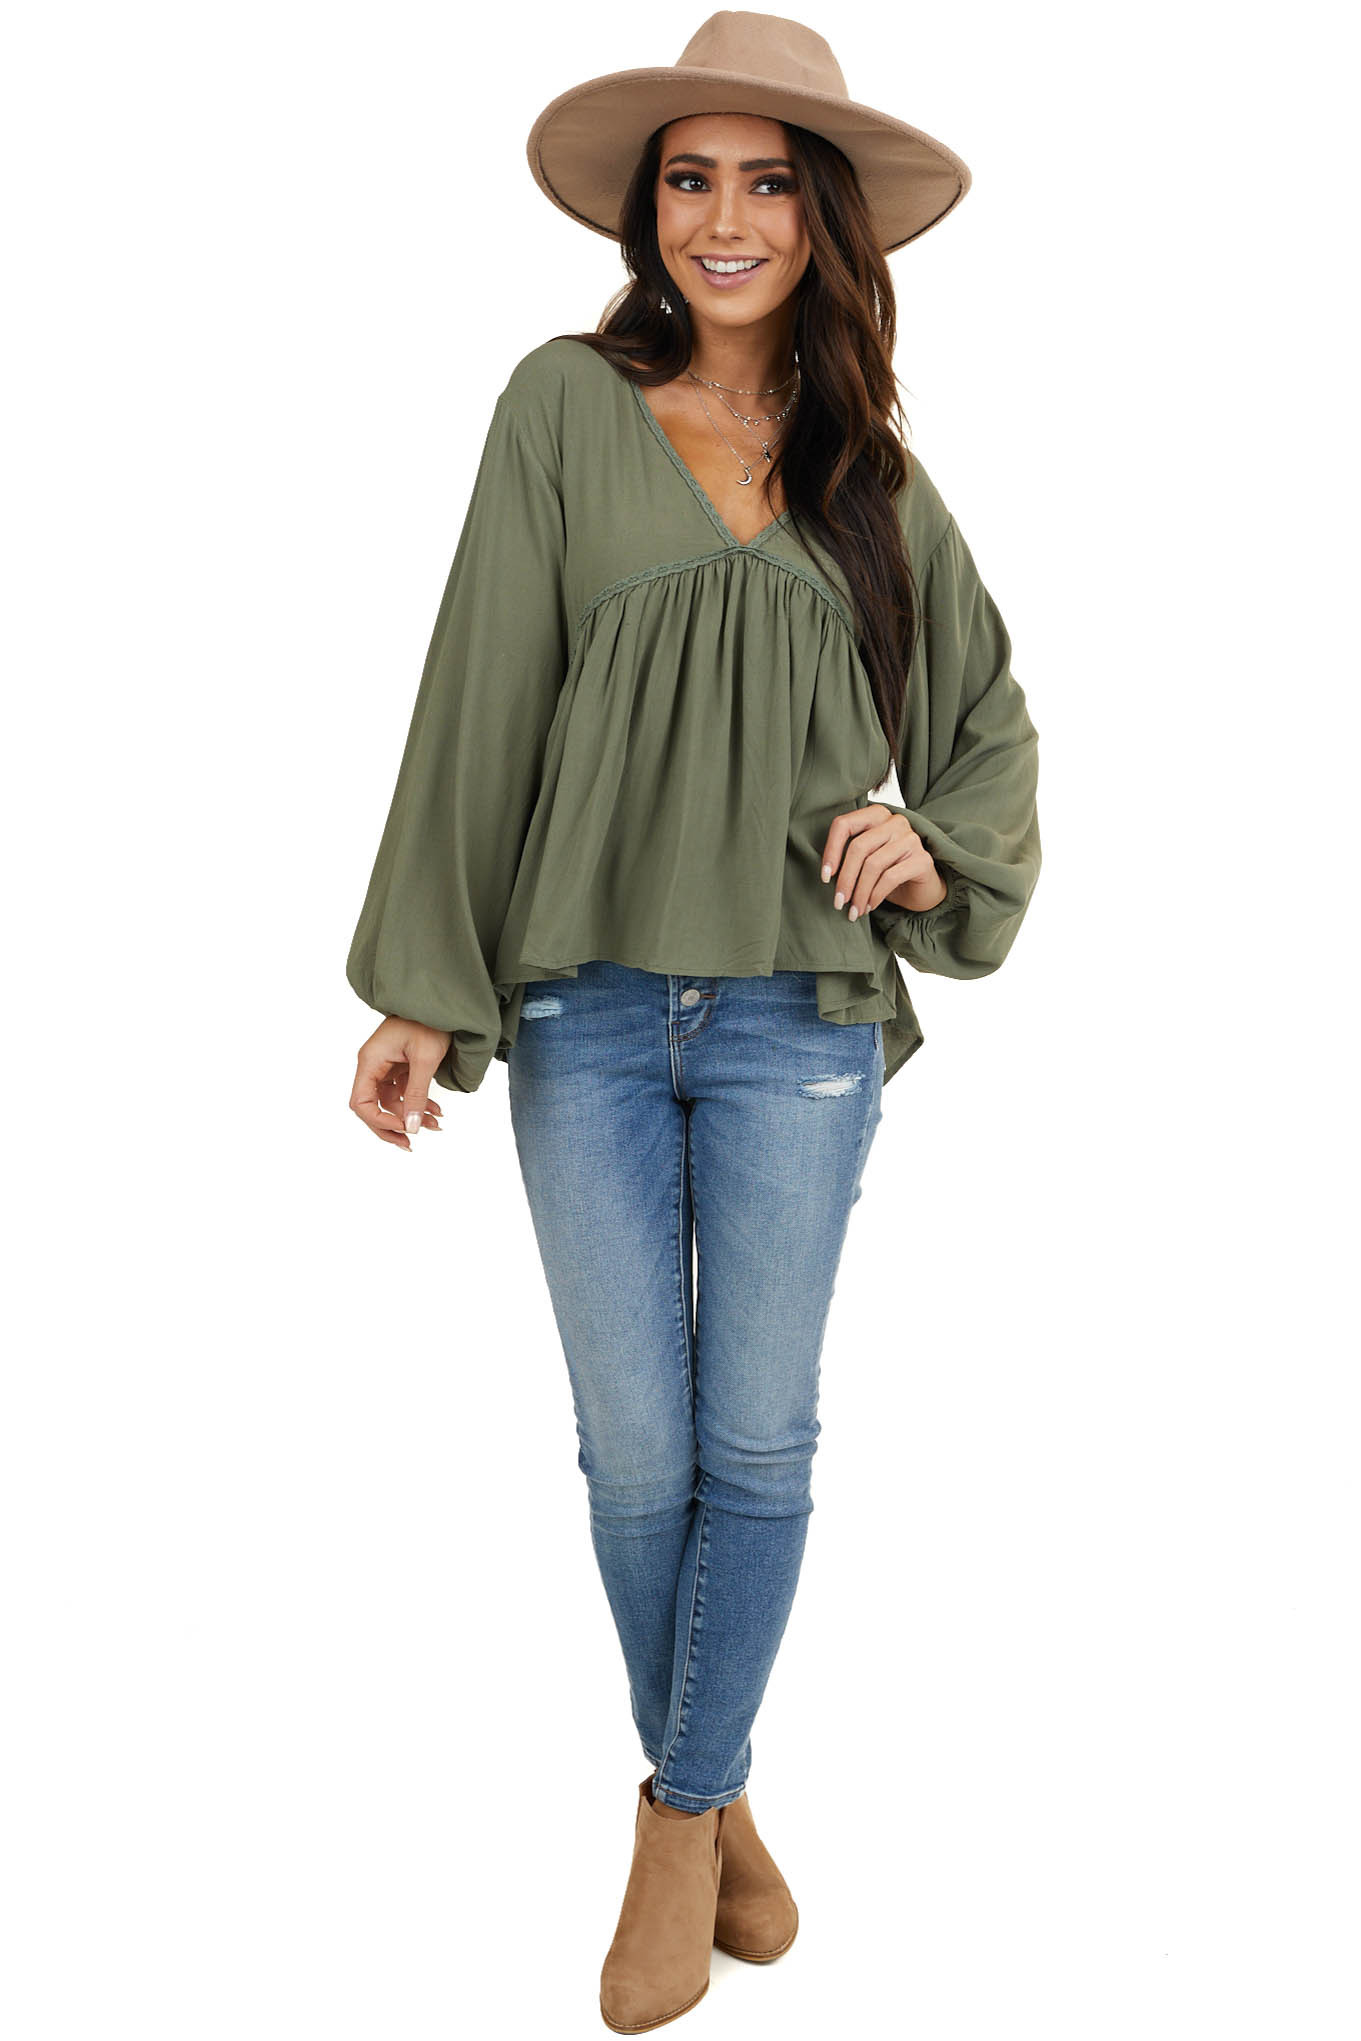 Faded Olive Drop Waist Top with Tied Back and Bubble Sleeves